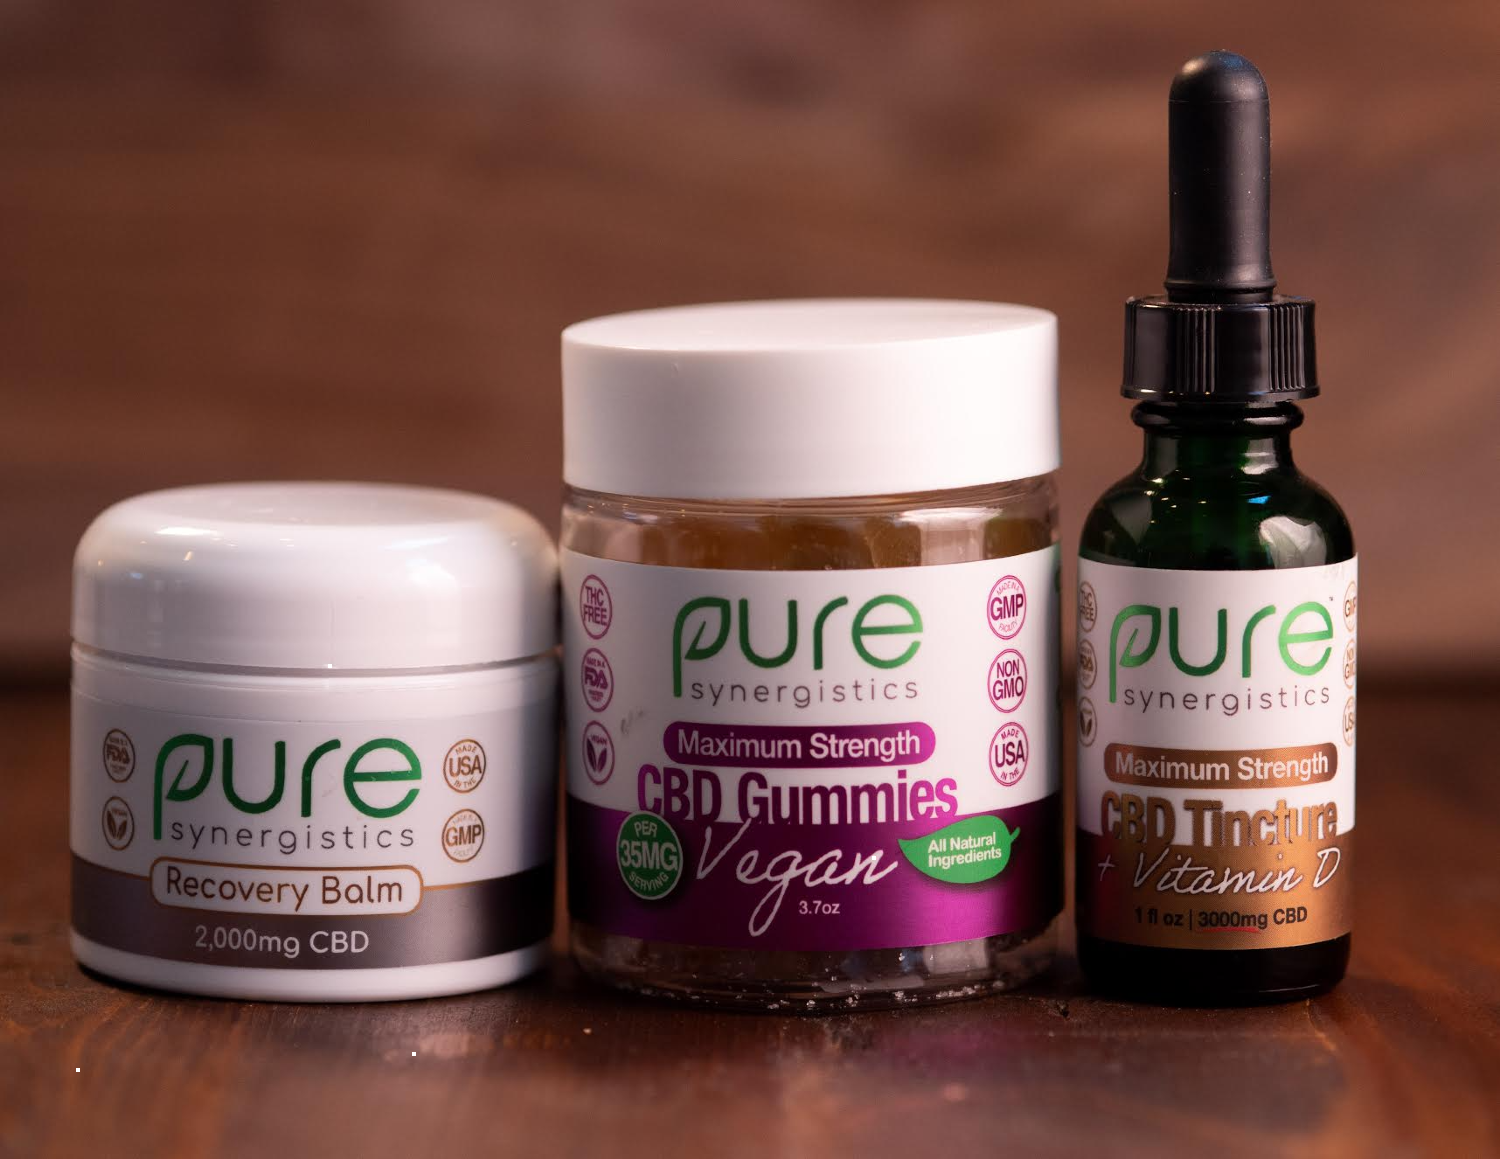 Featured in THCnet: Hemp Synergistics Launches 2 Direct-to-Consumer Retail Lines